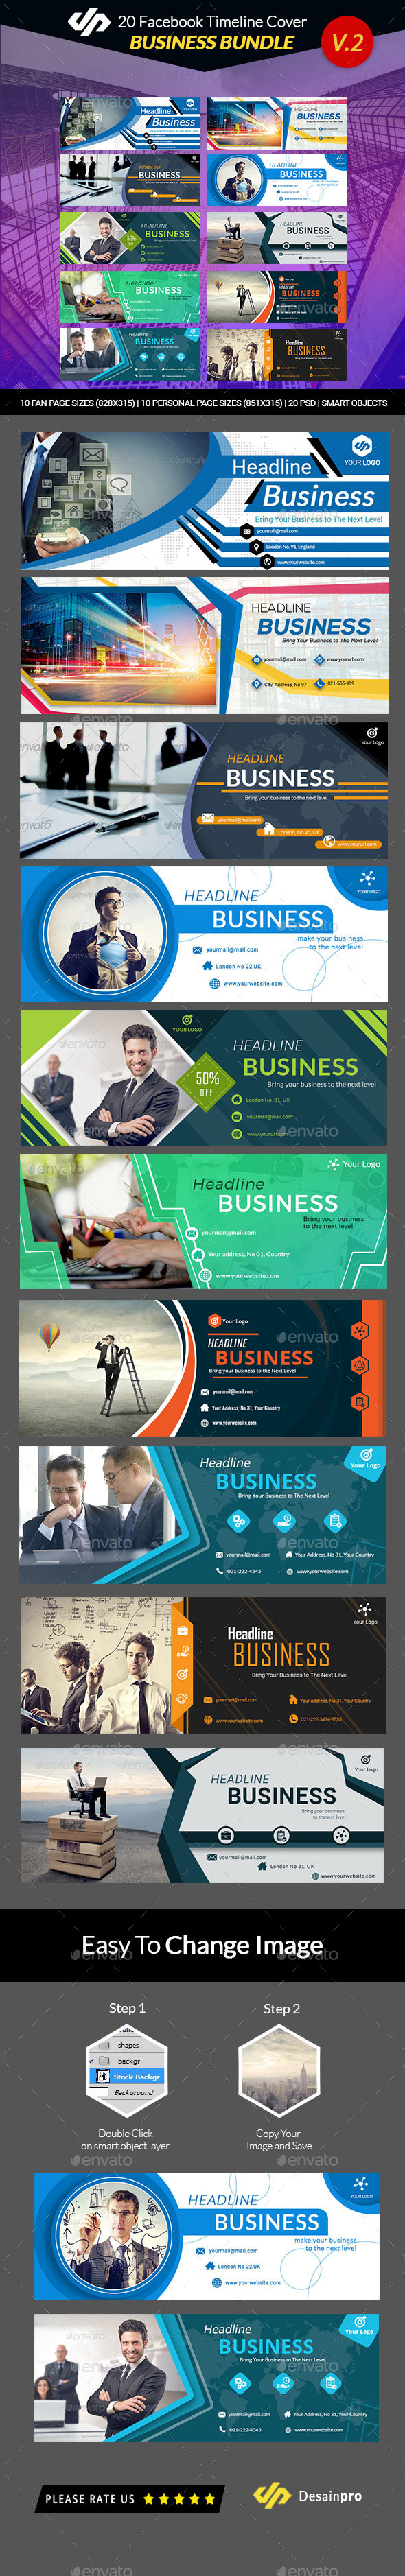 GraphicRiver 20 FB Business Timeline Covers Bundle V2 AR 21179643